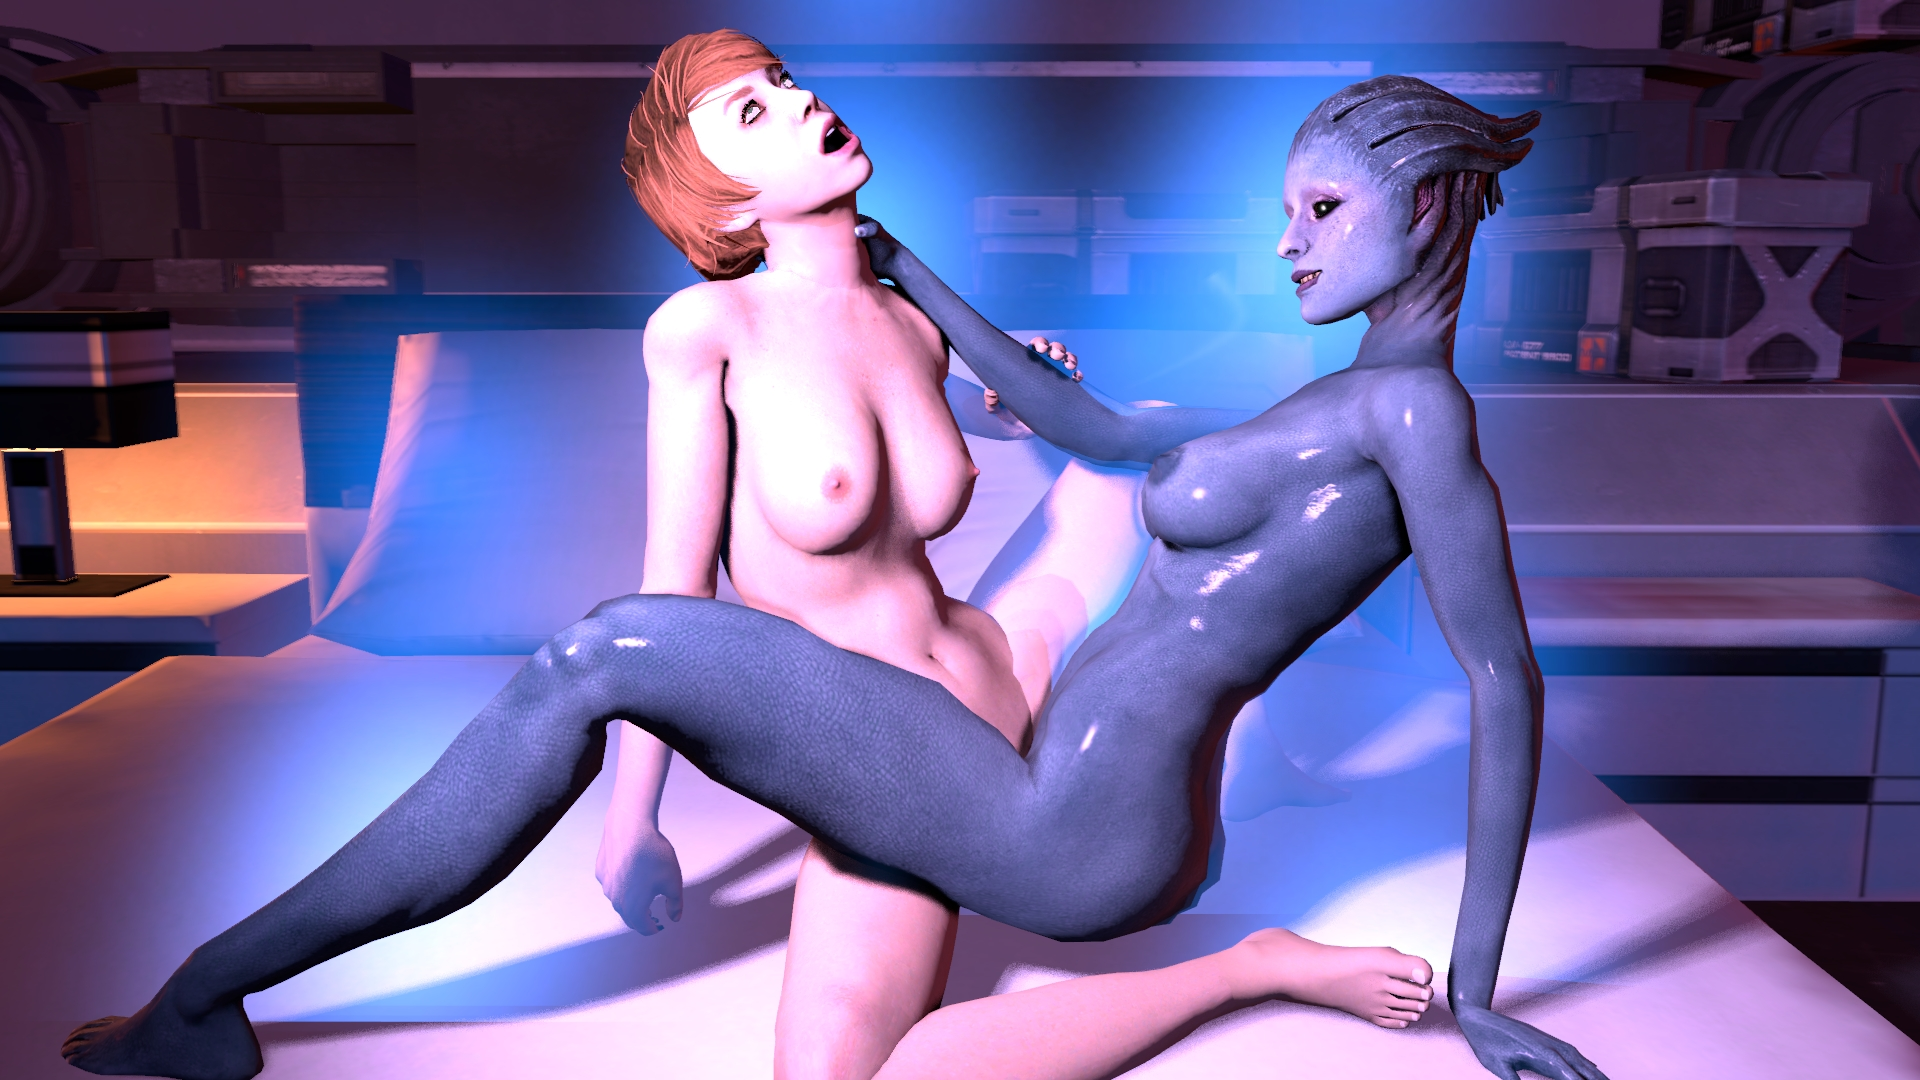 Asari Cosplay Porn - showing porn Images For Asari Cosplay porn   Free Download ...